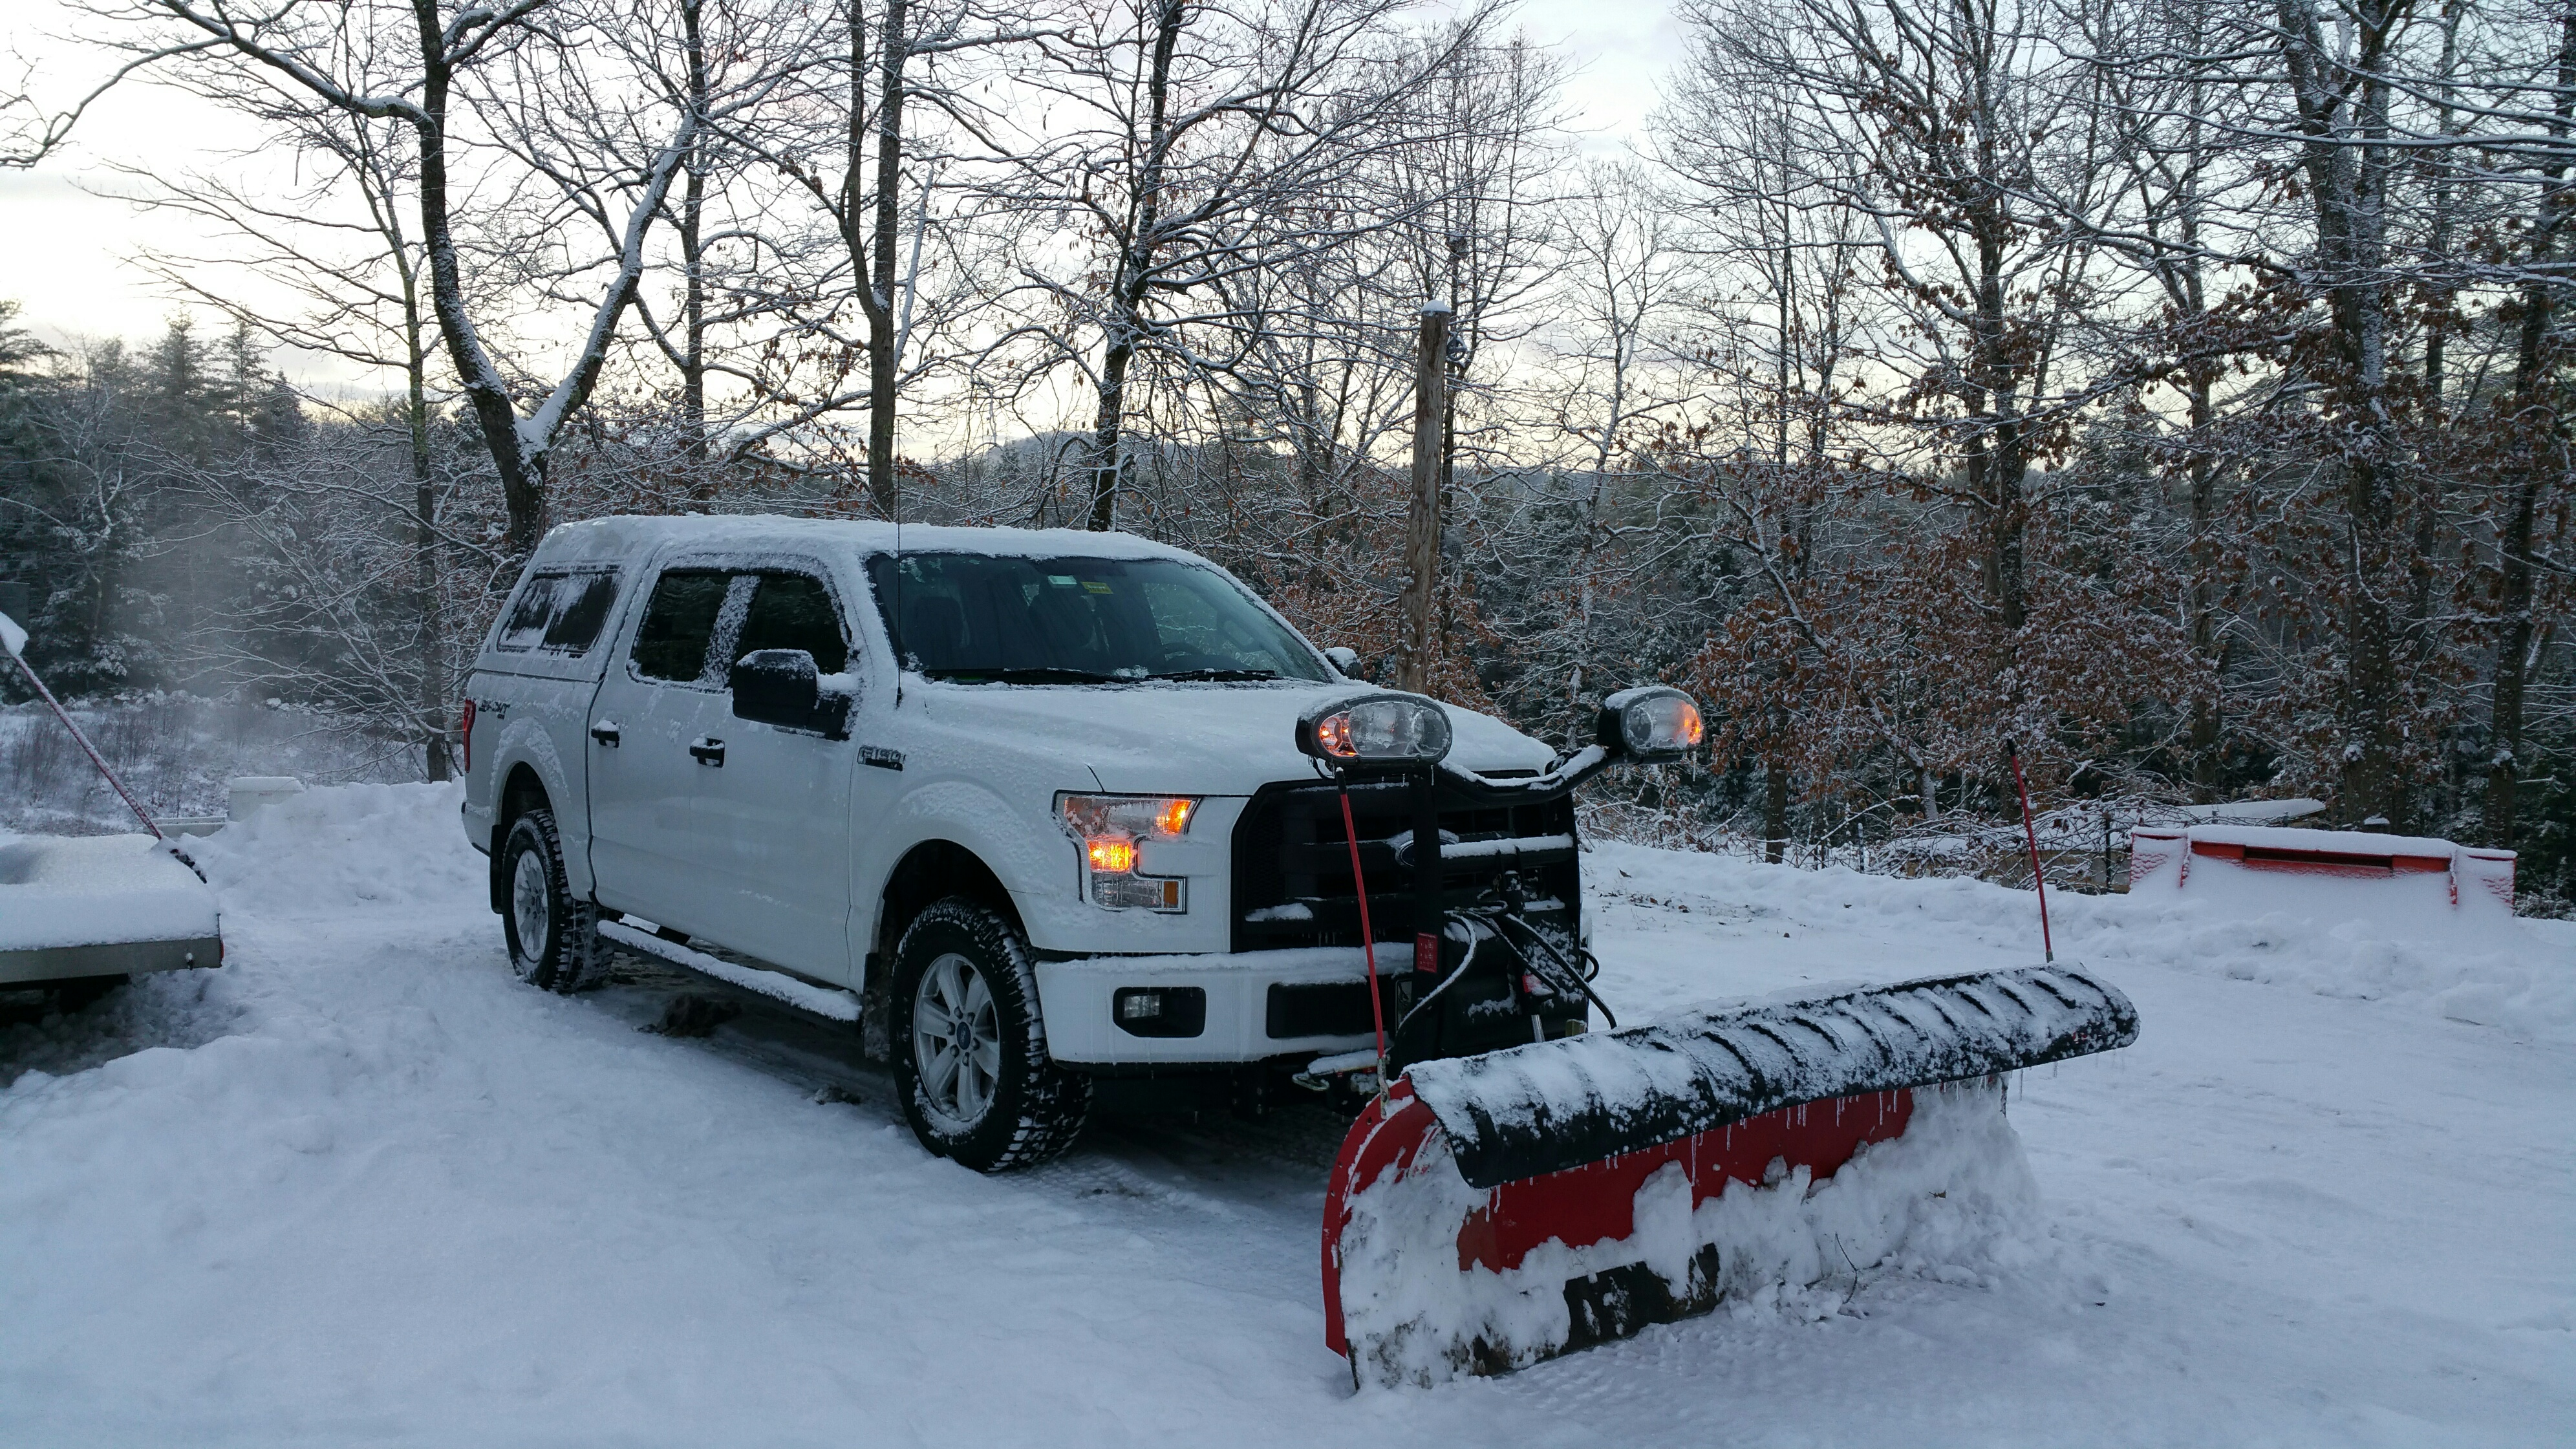 Xp 900 Ranger And Boss Snowplow Pics Please Page 2